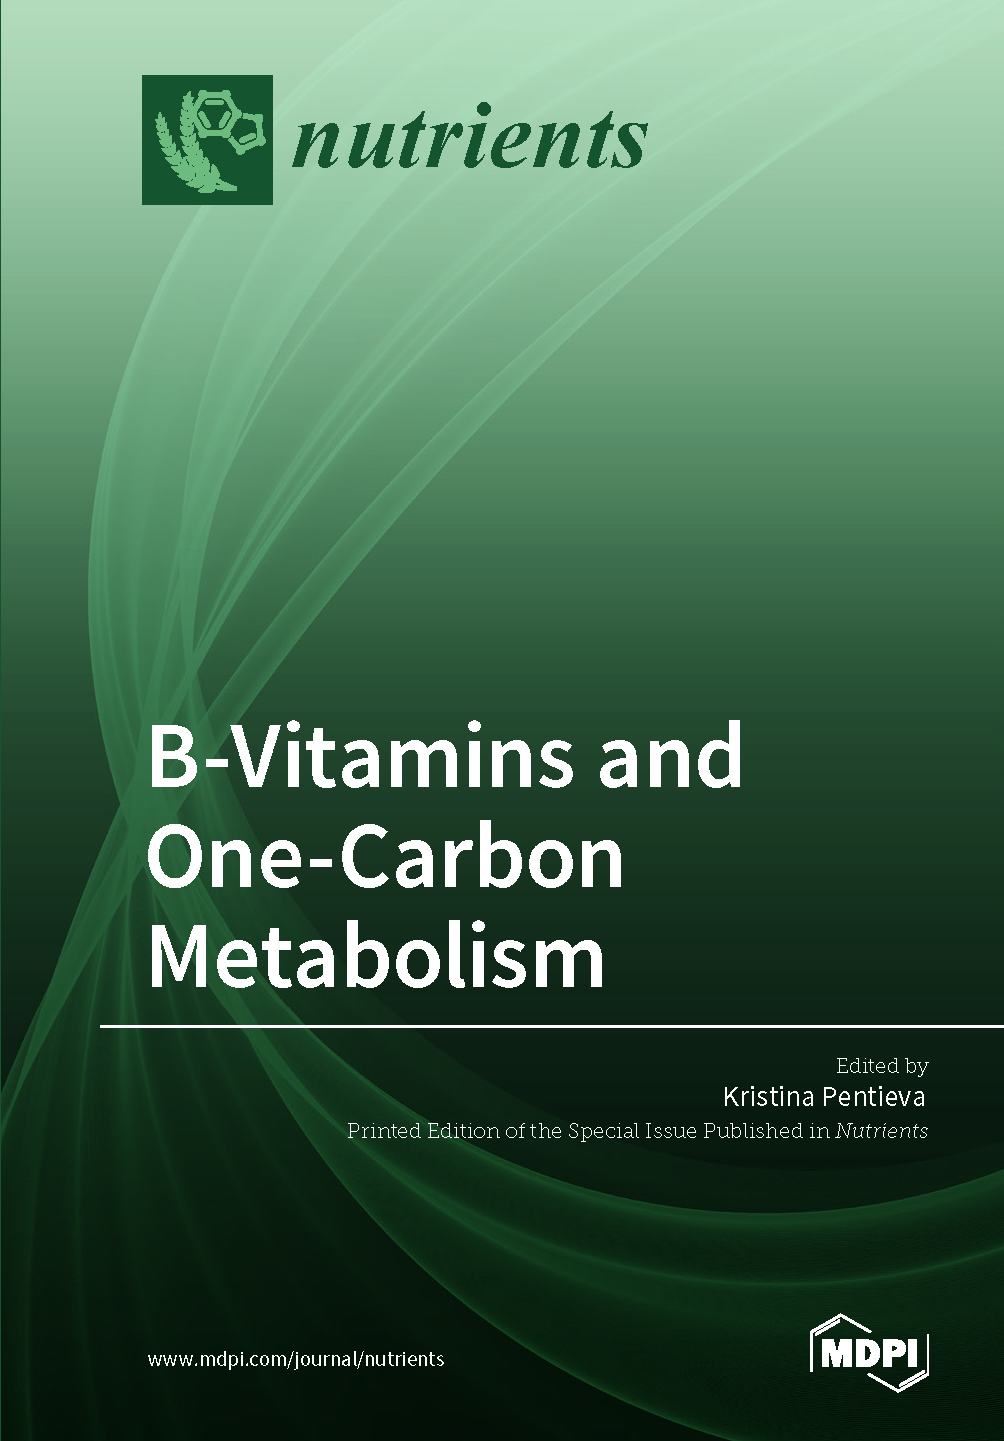 B-Vitamins and One-Carbon Metabolism